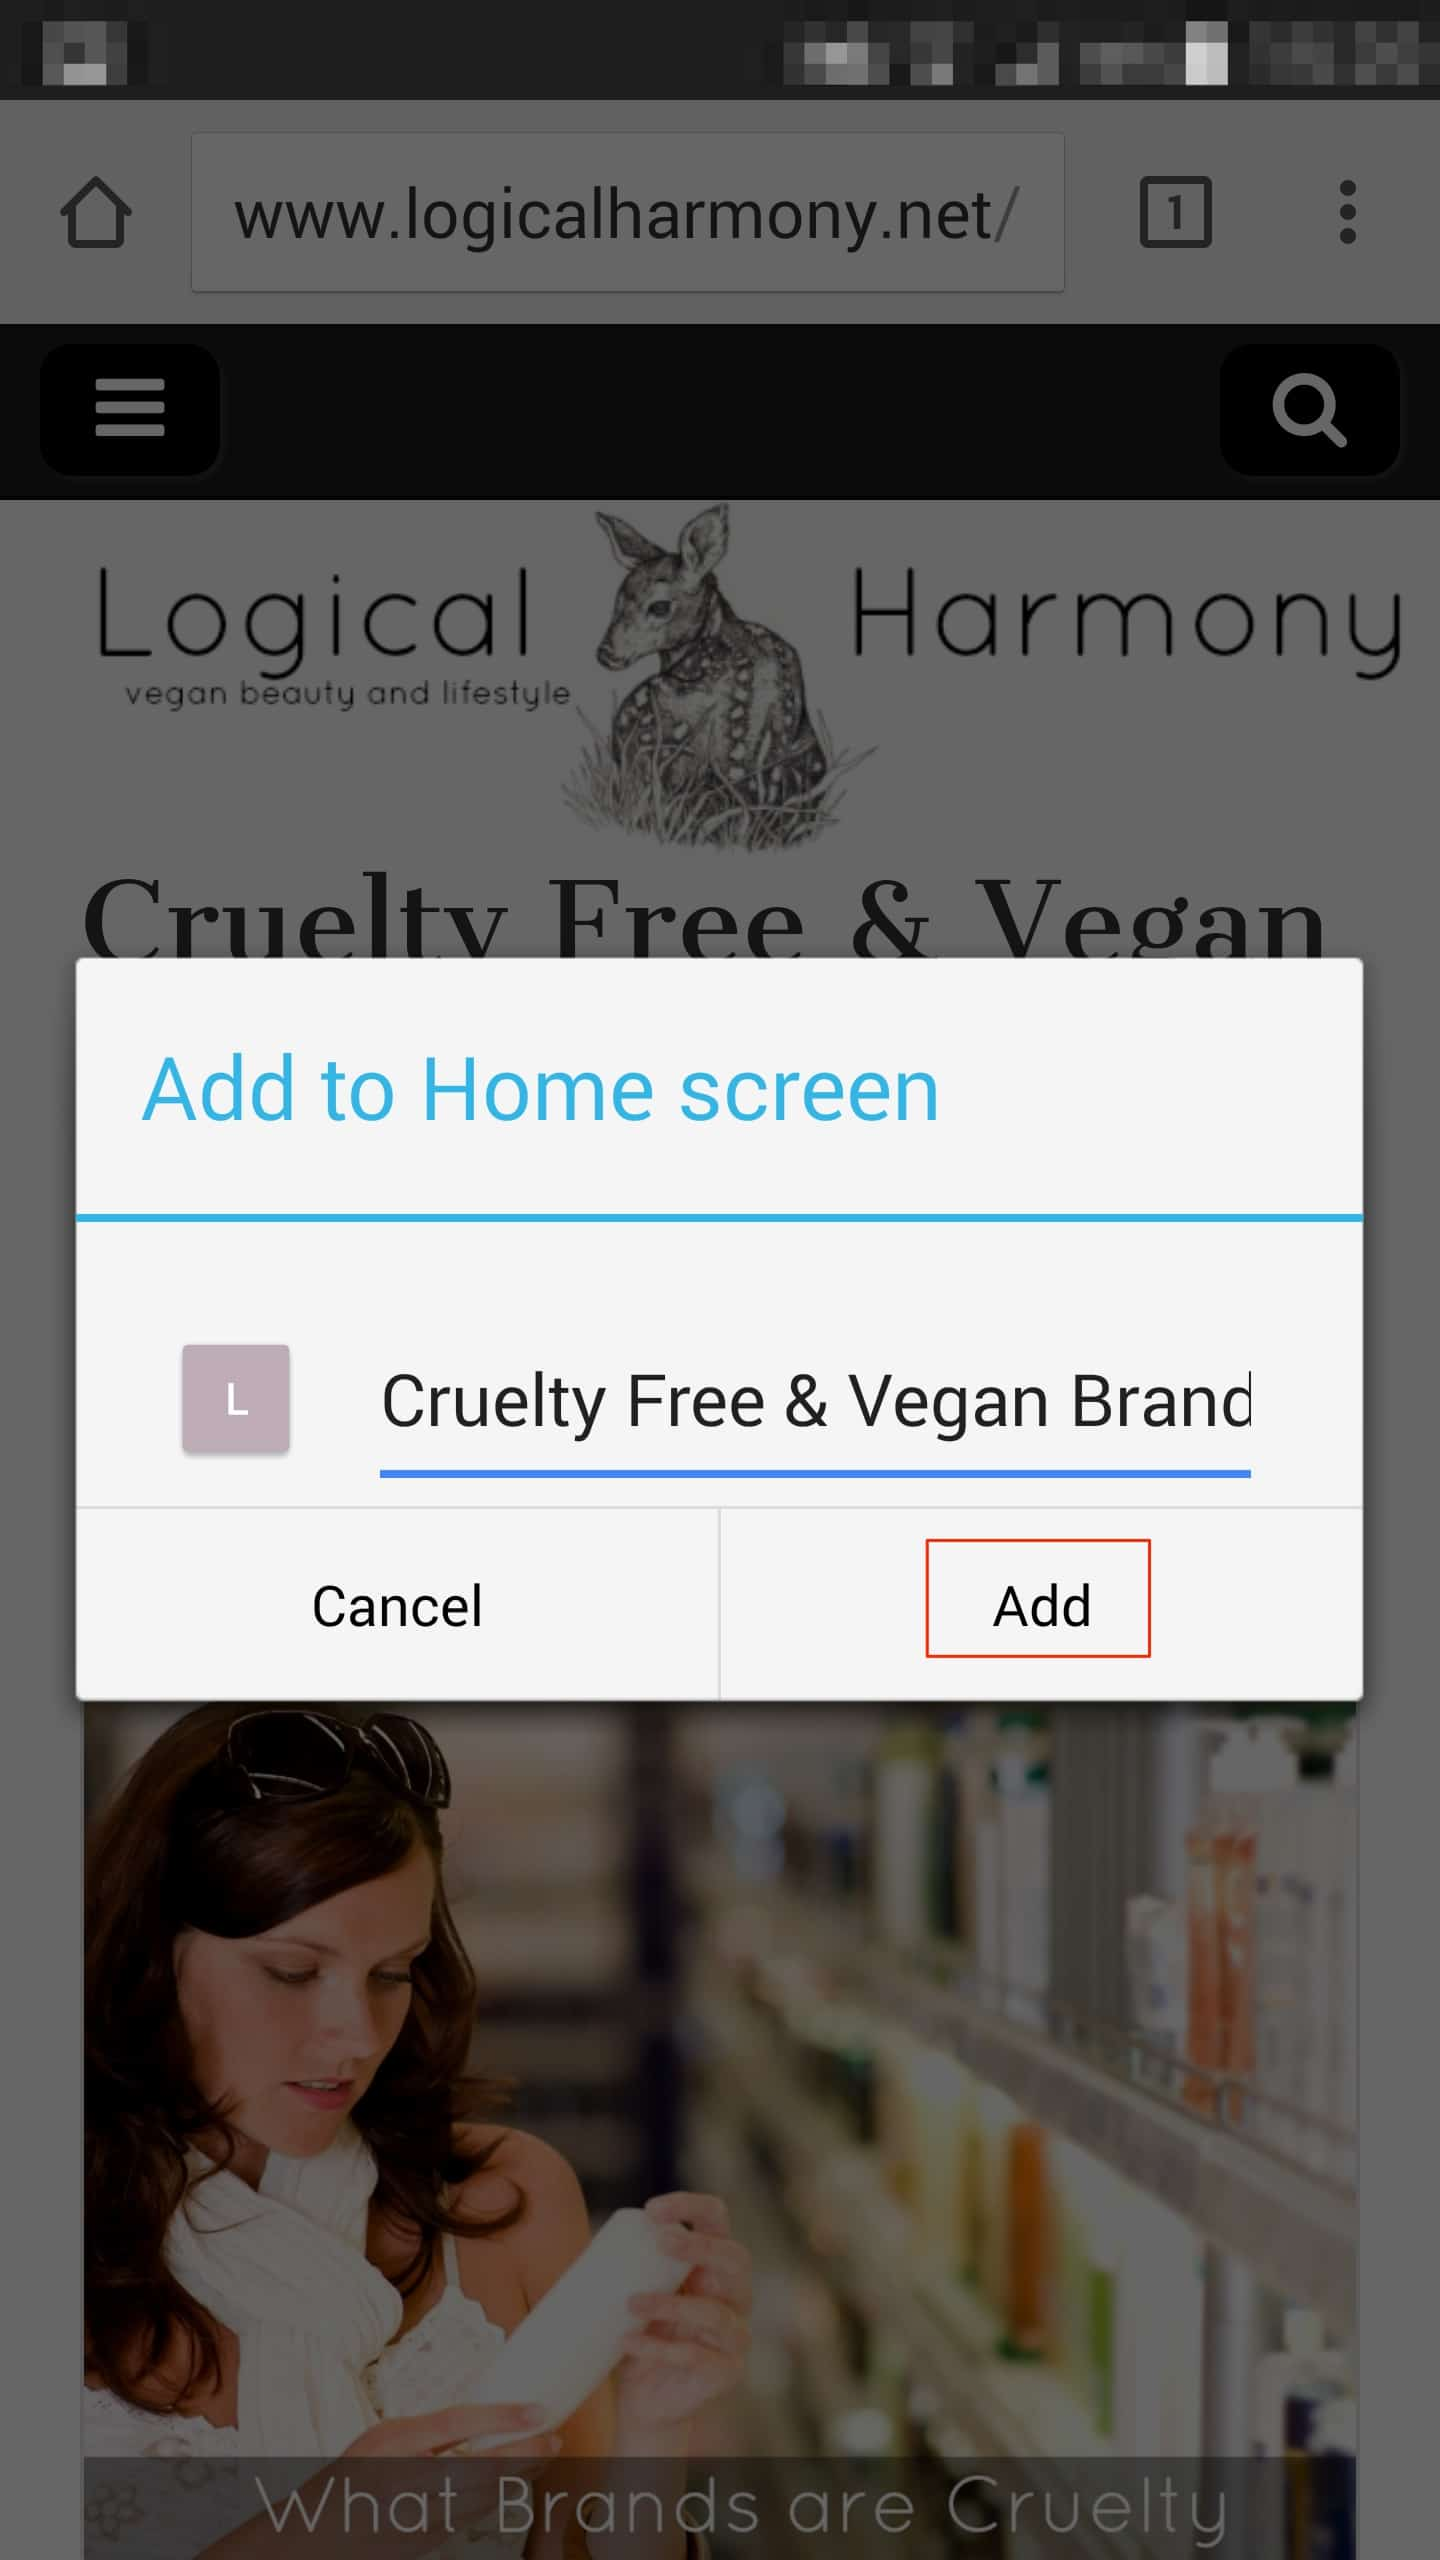 How to Add the Logical Harmony Cruelty Free Brand List to your Droid